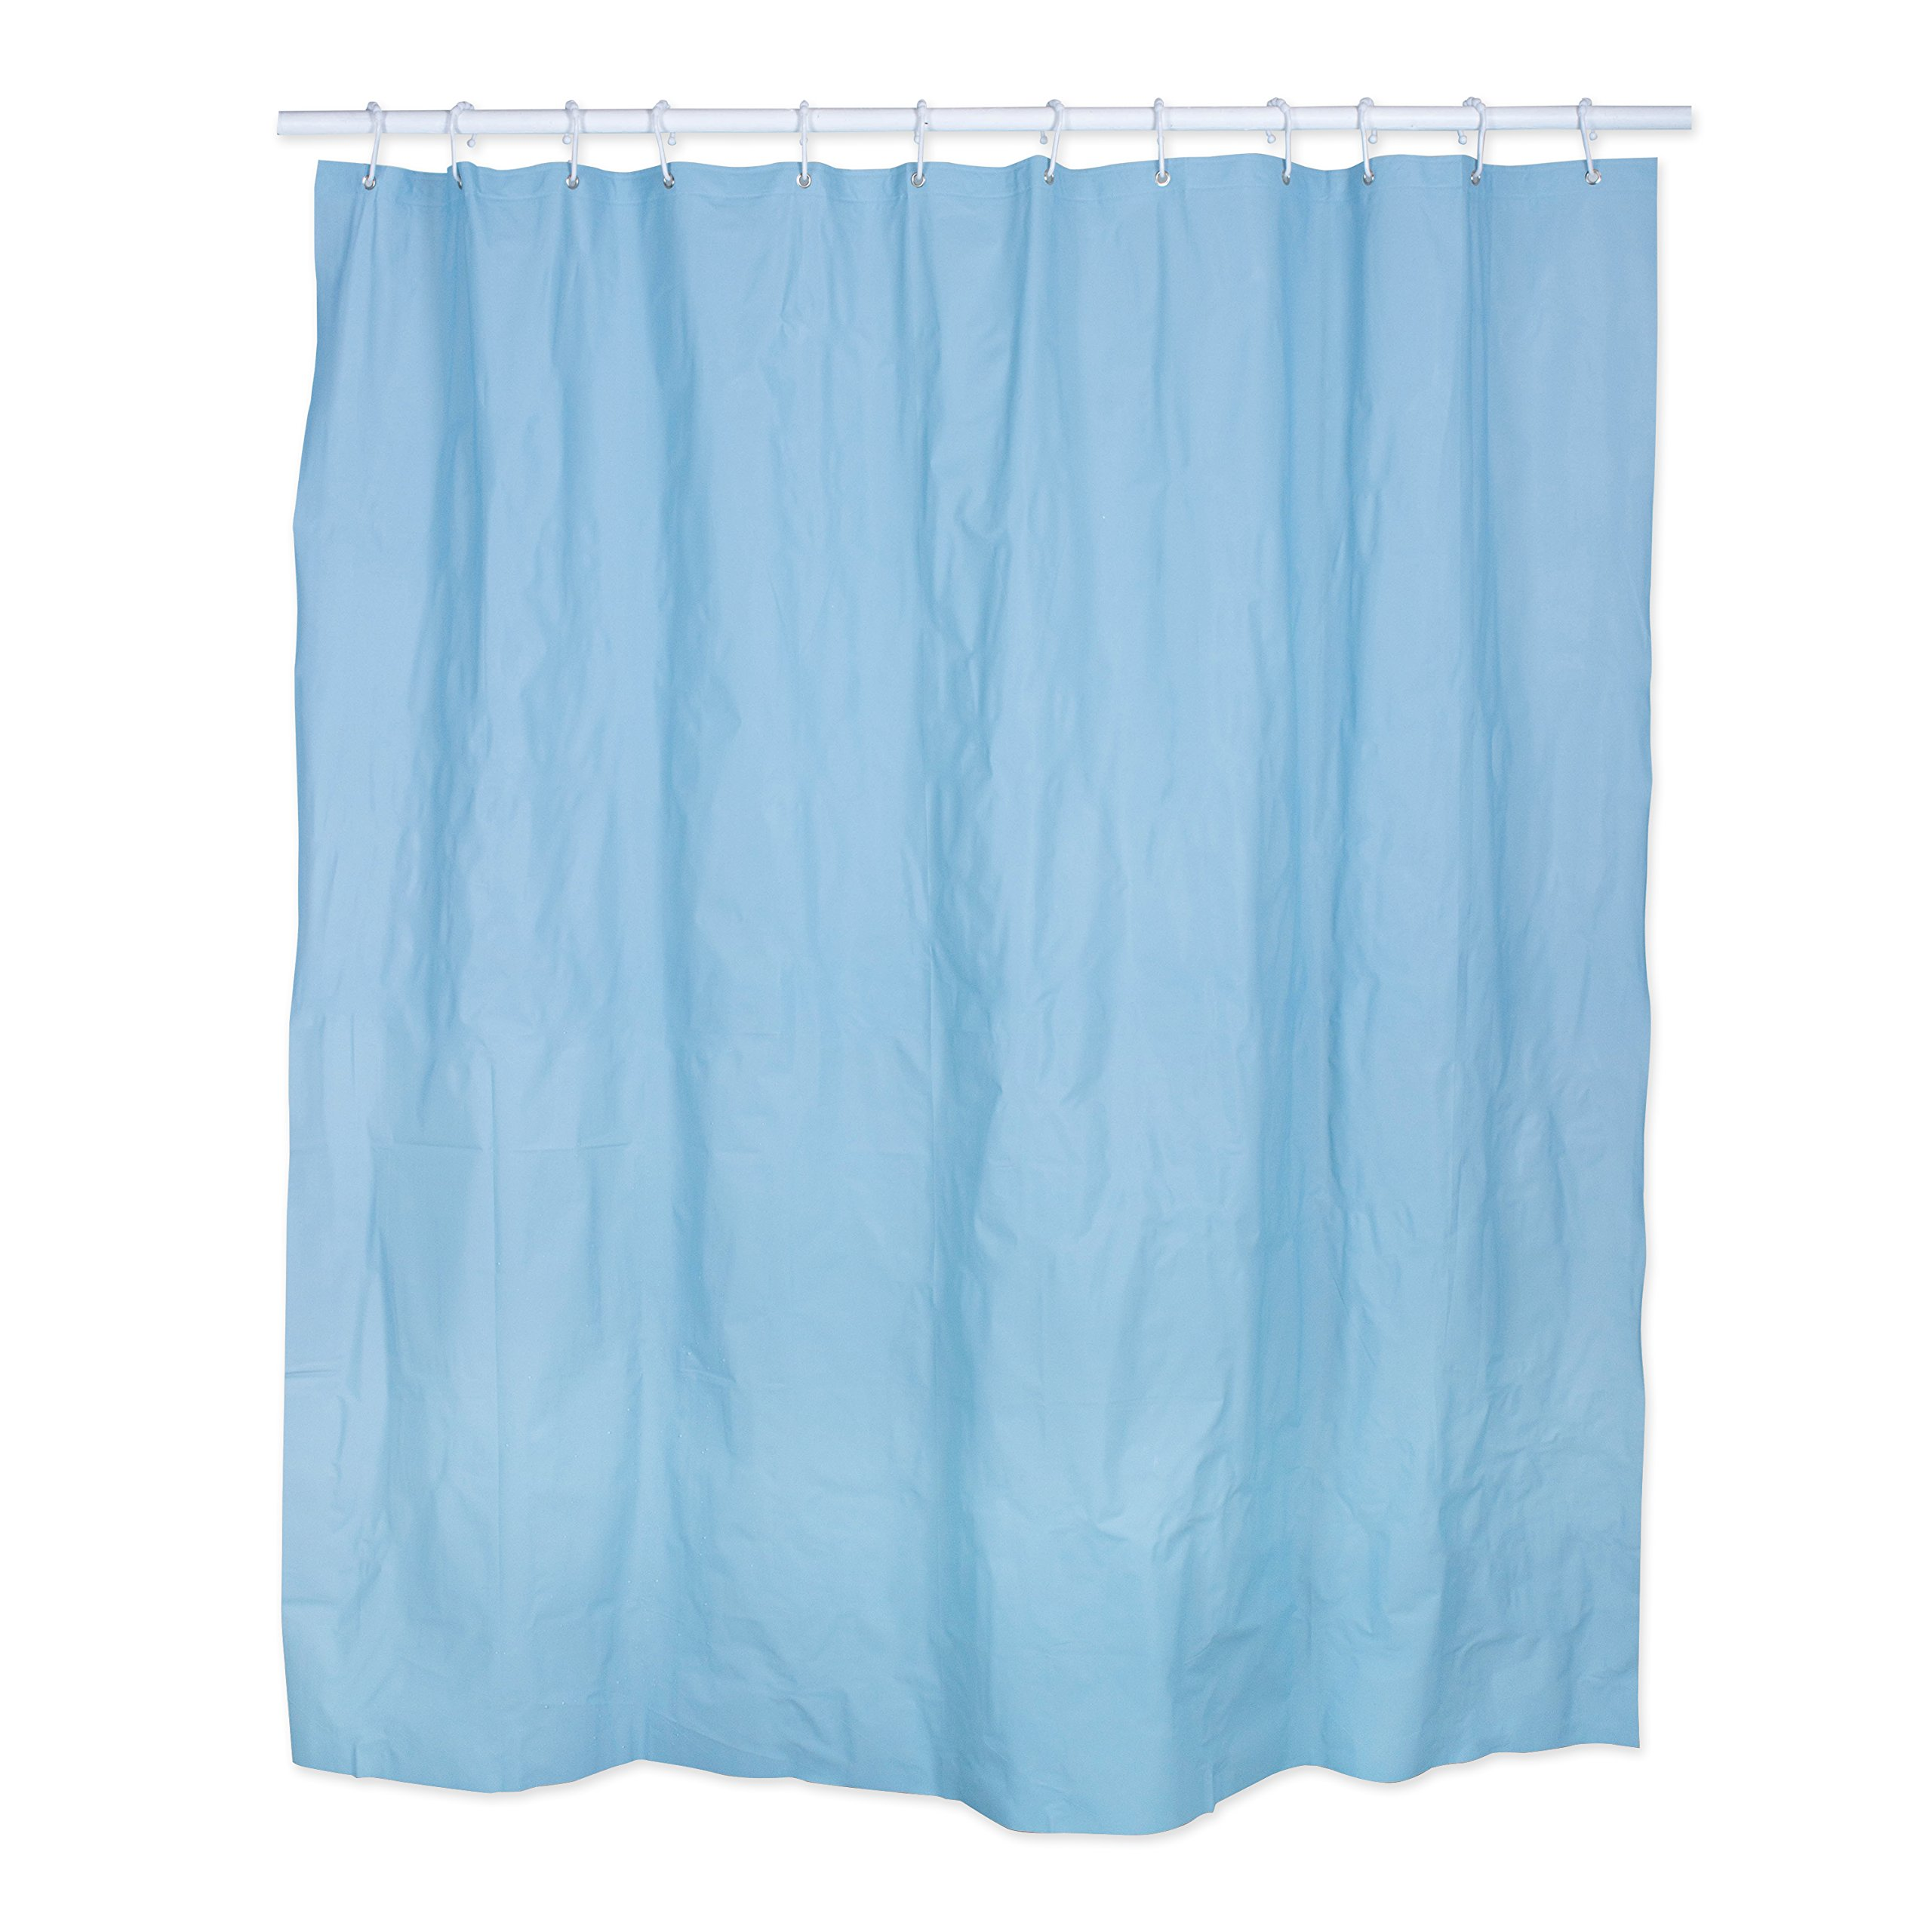 Polyester/PEVA Shower Curtain 70x72'', Antibacterial and Mildew Resistant, Waterproof/Water-Repellent to Resist Germs, Bacteria & Mold for Everyday Use-Light Blue